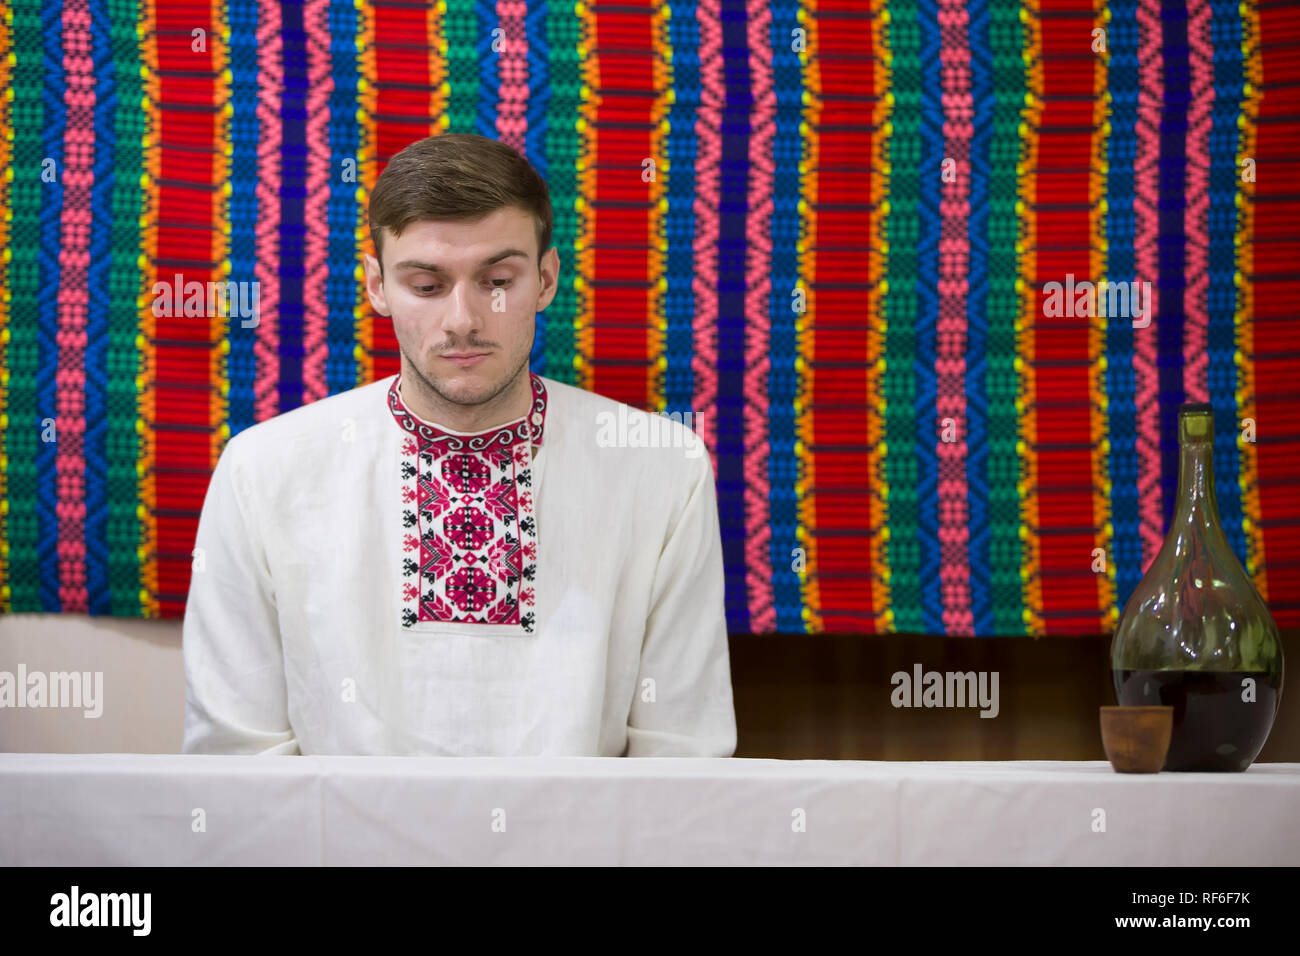 Reconstruction of an ethnic old Belarusian wedding.Ukrainian man in embroidery with a bottle of moonshine sitting a - Stock Image